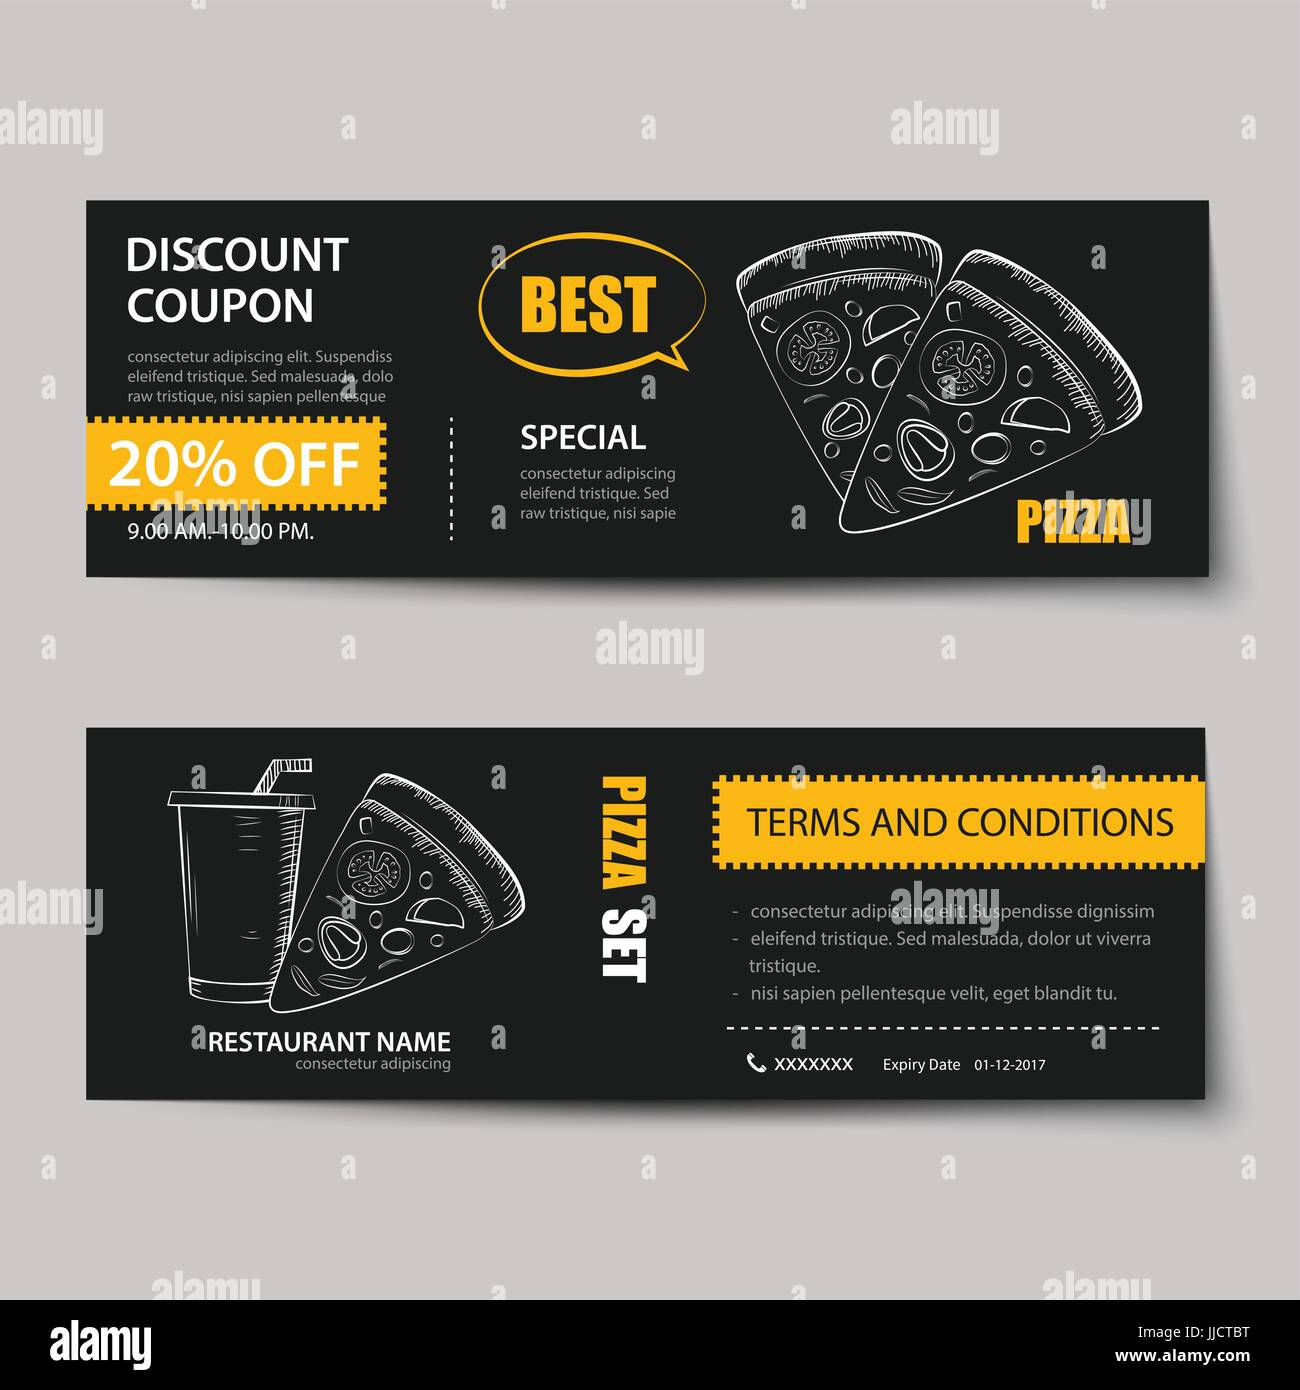 fast food coupon discount template flat design stock vector art